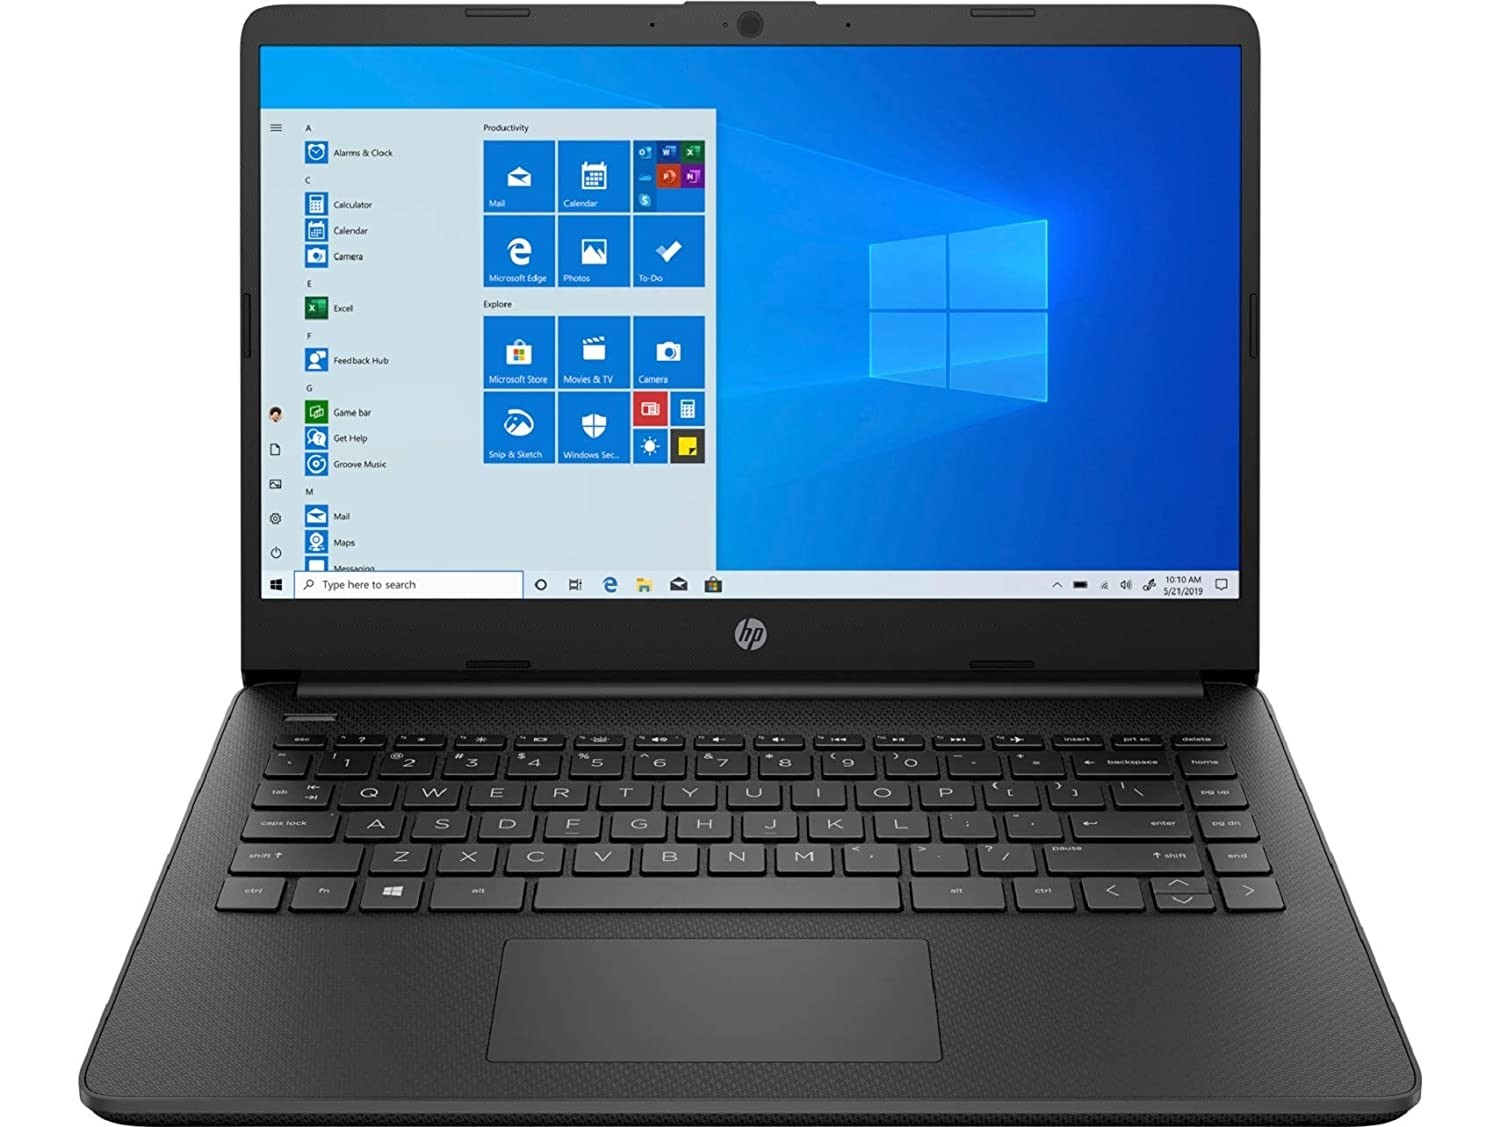 Refurbished laptops & desktops - HP 14 Ultra Thin and Light Laptop (10th Gen i5-1035G1/8GB/512GB SSD/Windows 10 Home), 14s-dq1090tu